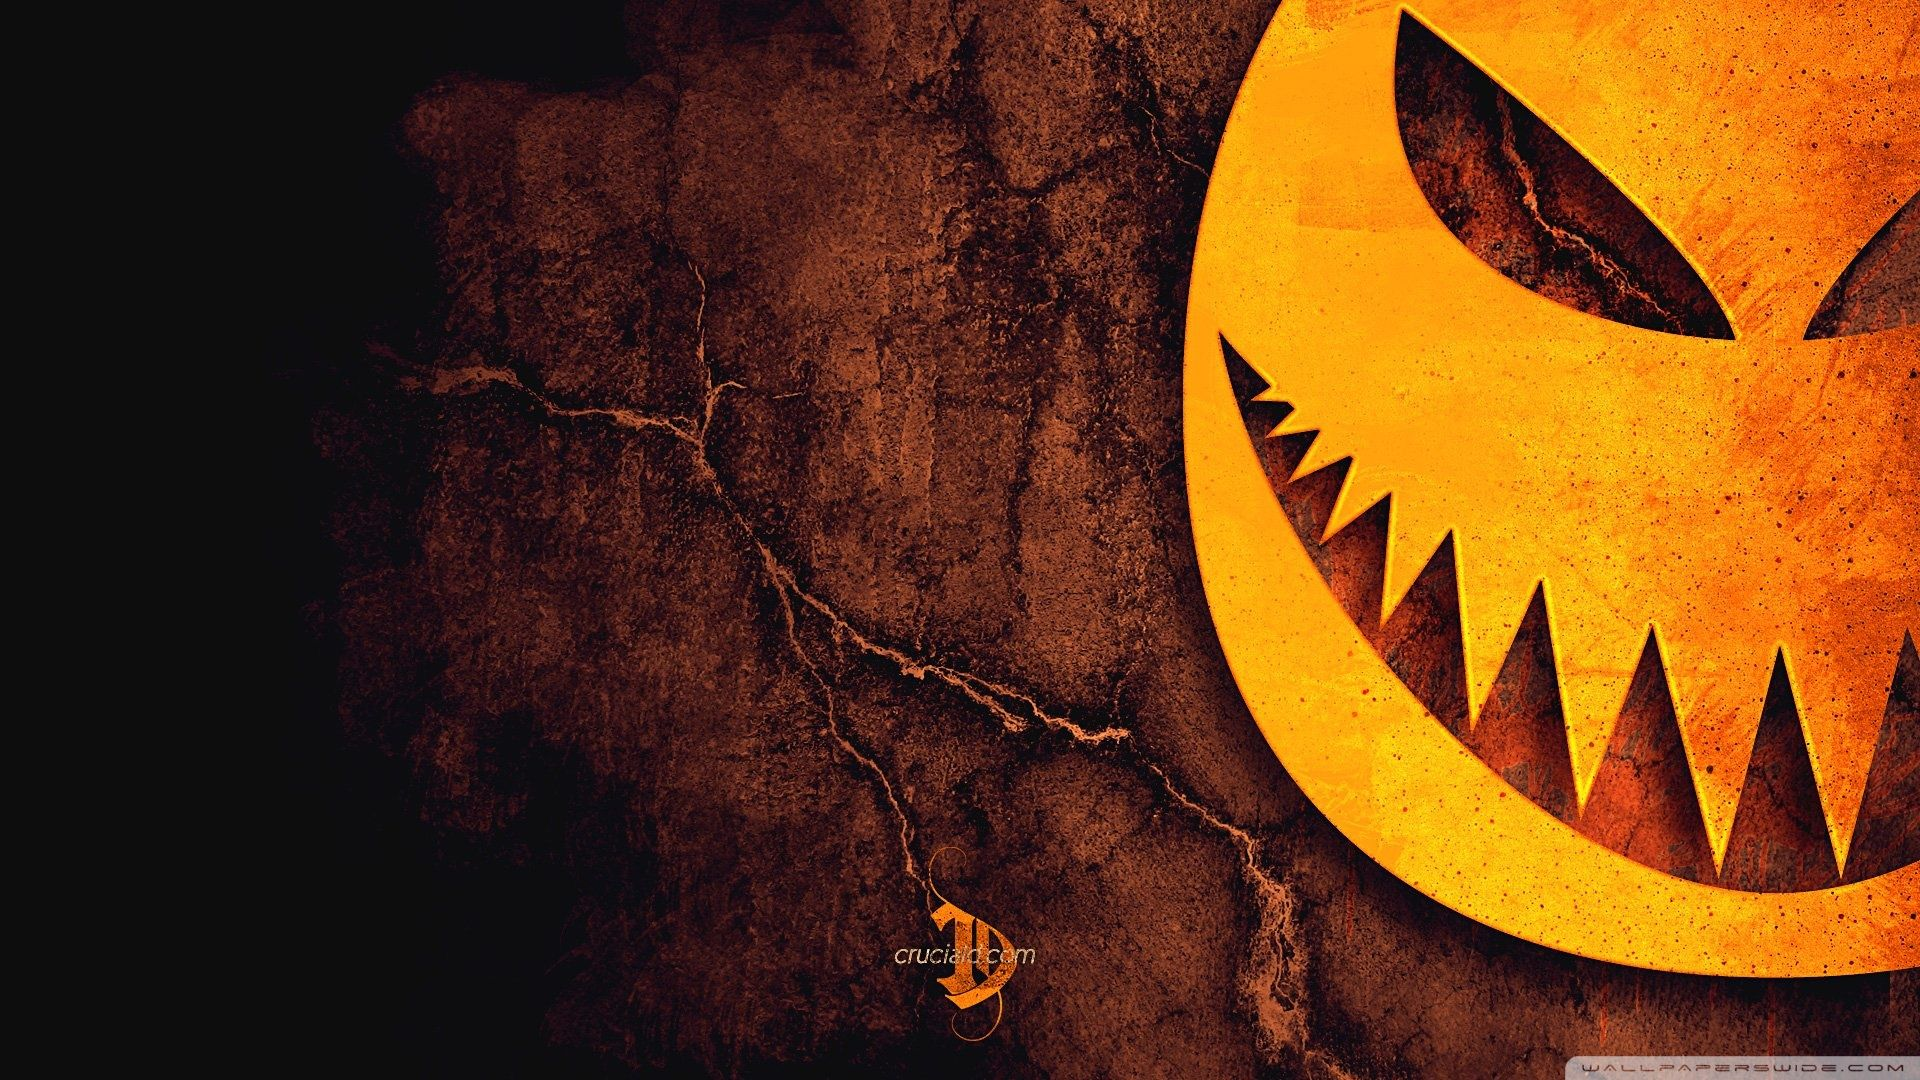 Cool Wallpaper High Resolution Halloween - c00463fd19ade8c53534cd790bece6be  2018_704179.jpg